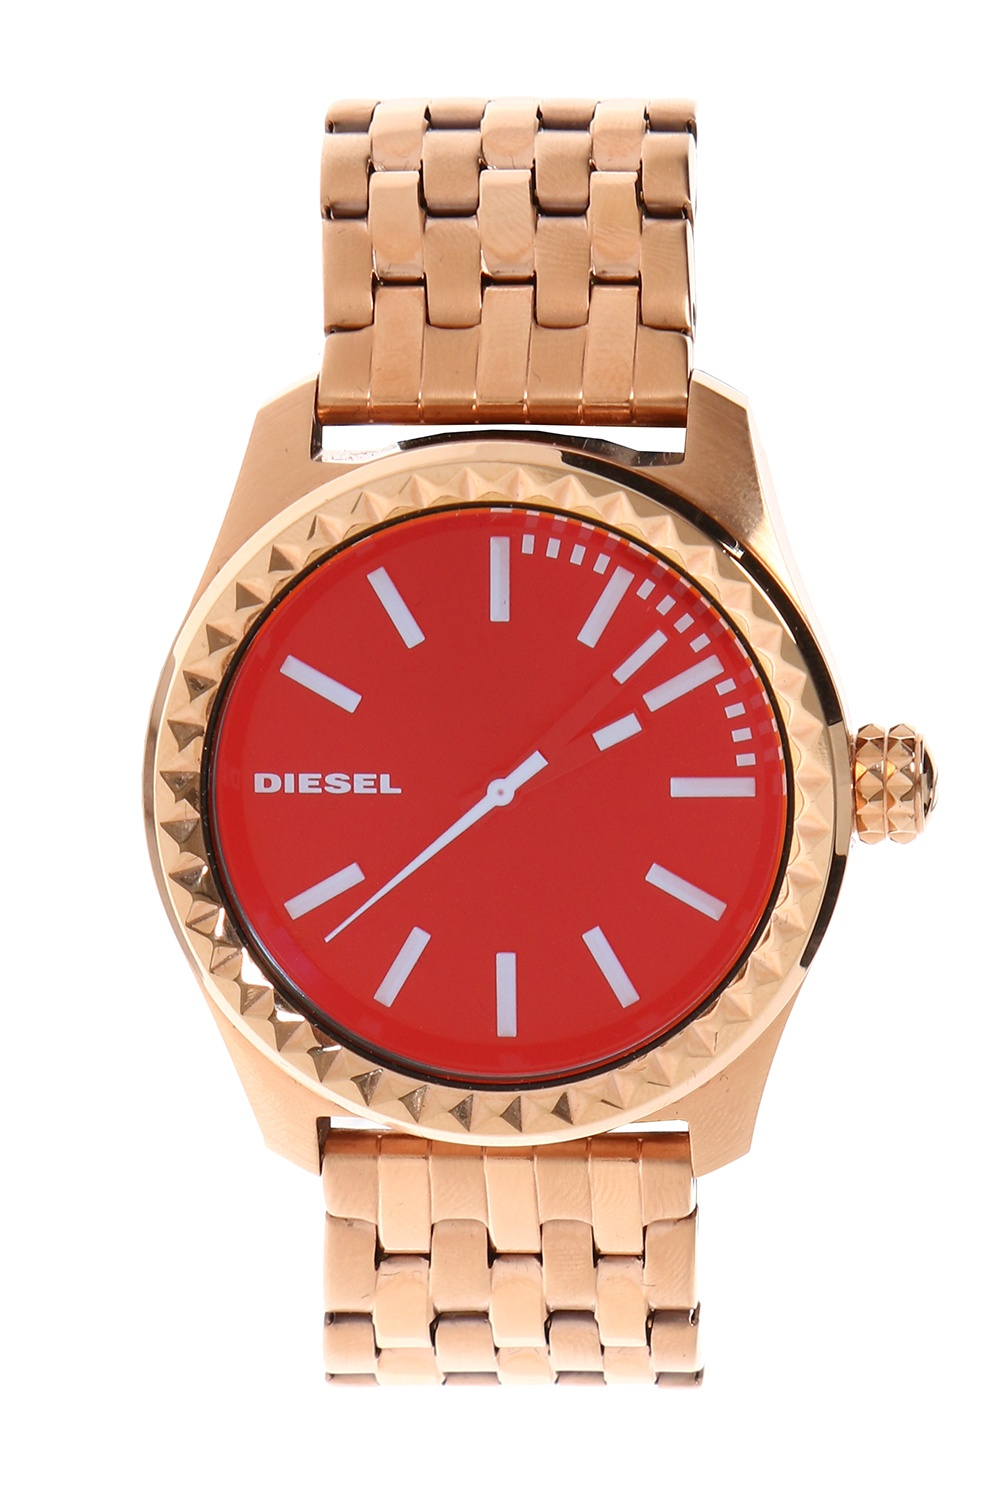 Diesel Steel Watch